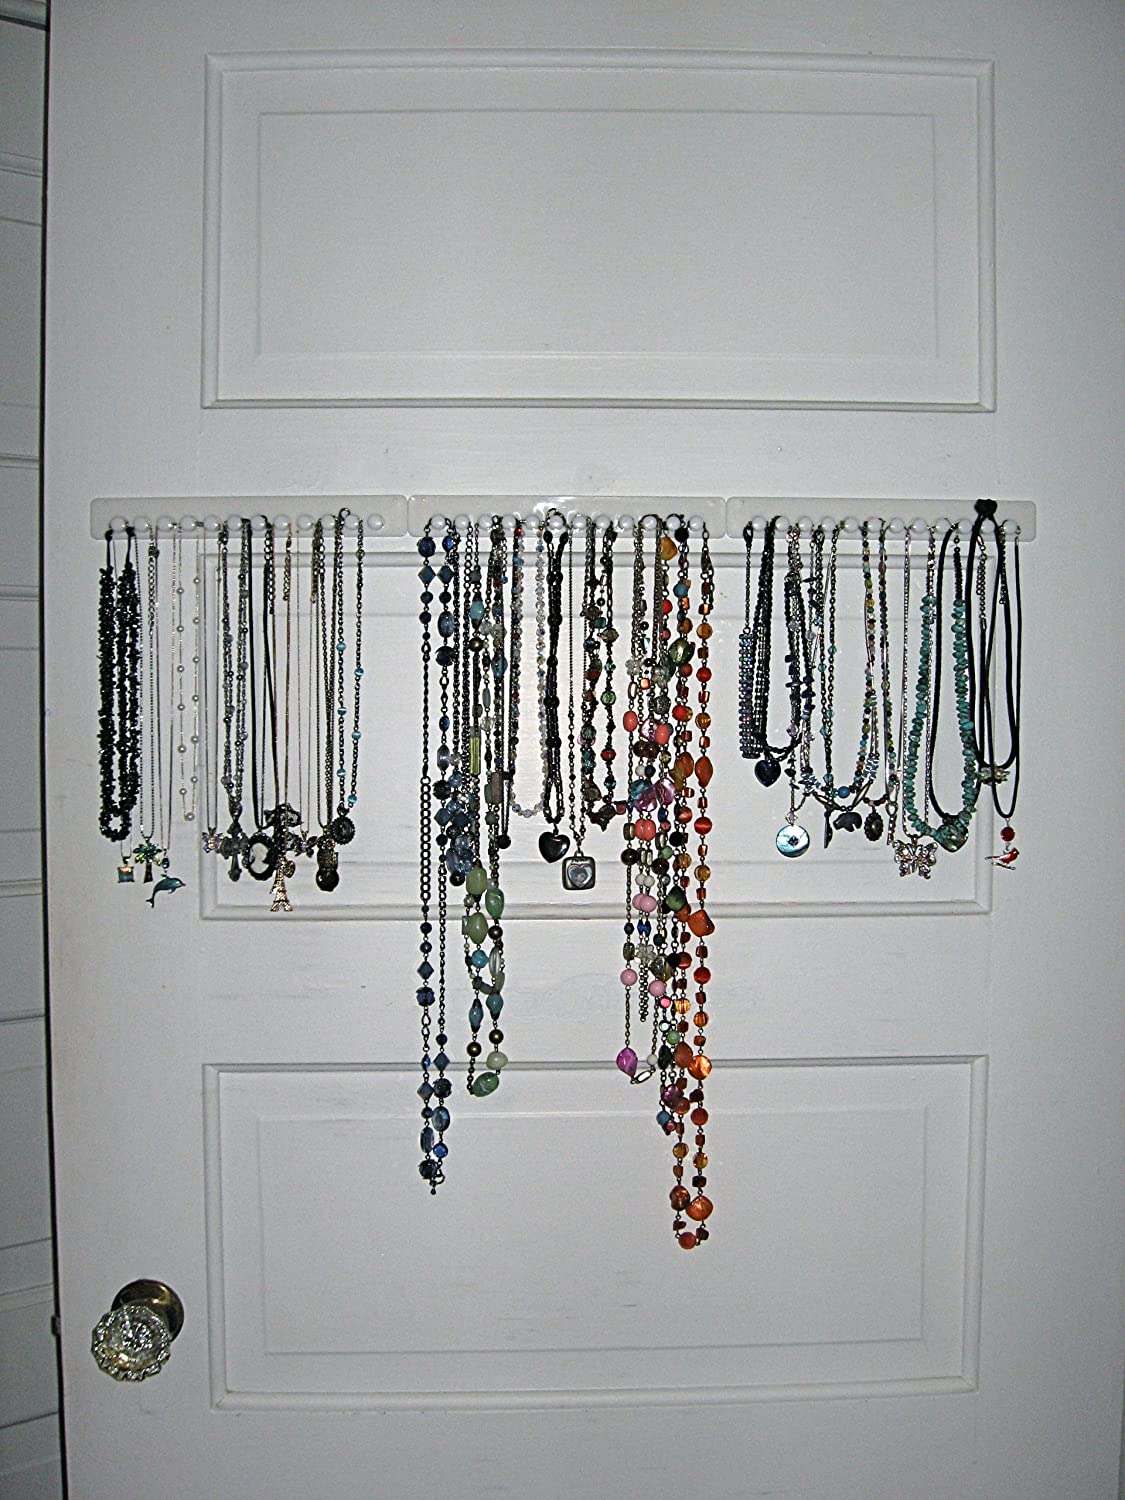 Adhesive Hanging Storage Organizer Necklace